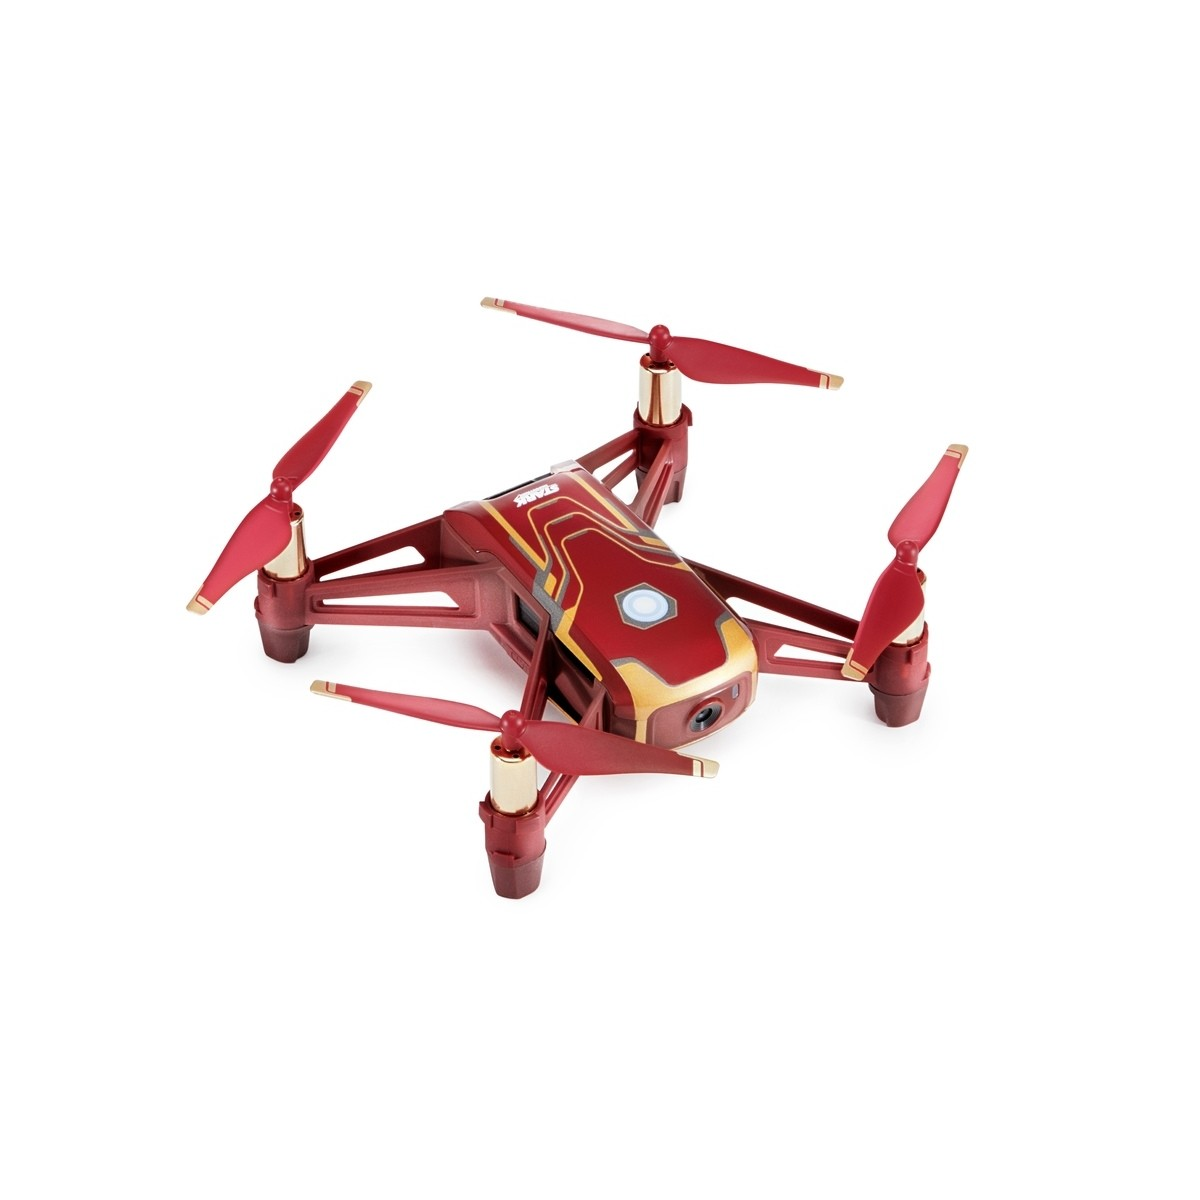 Cool New Tello Toy Drone